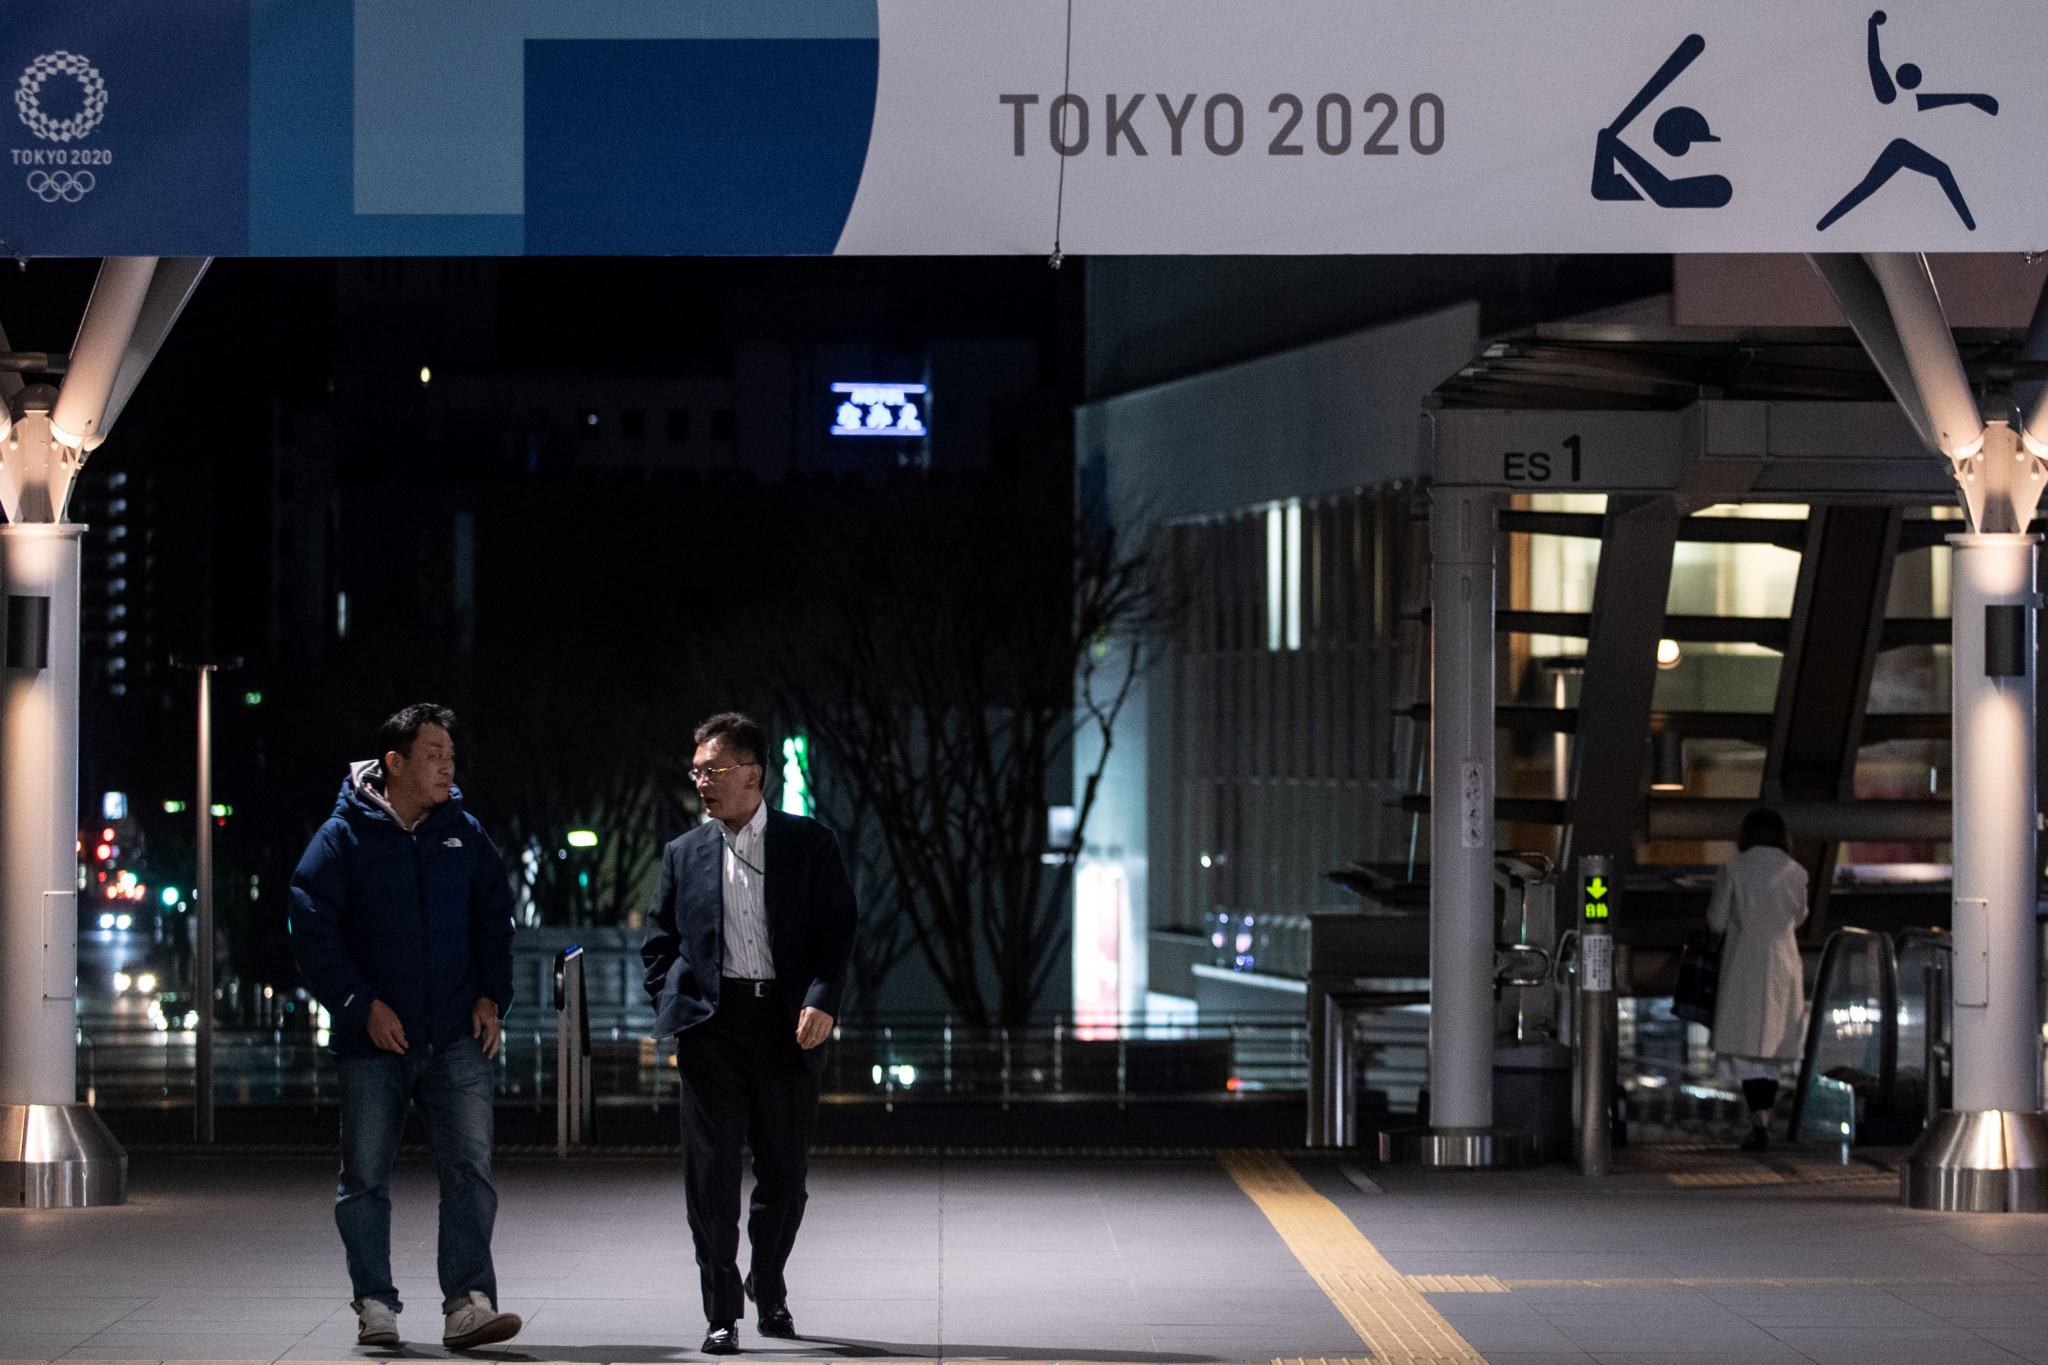 Federations are seeking payment of expected revenues for the postponed Tokyo 2020 Olympics ©Getty Images